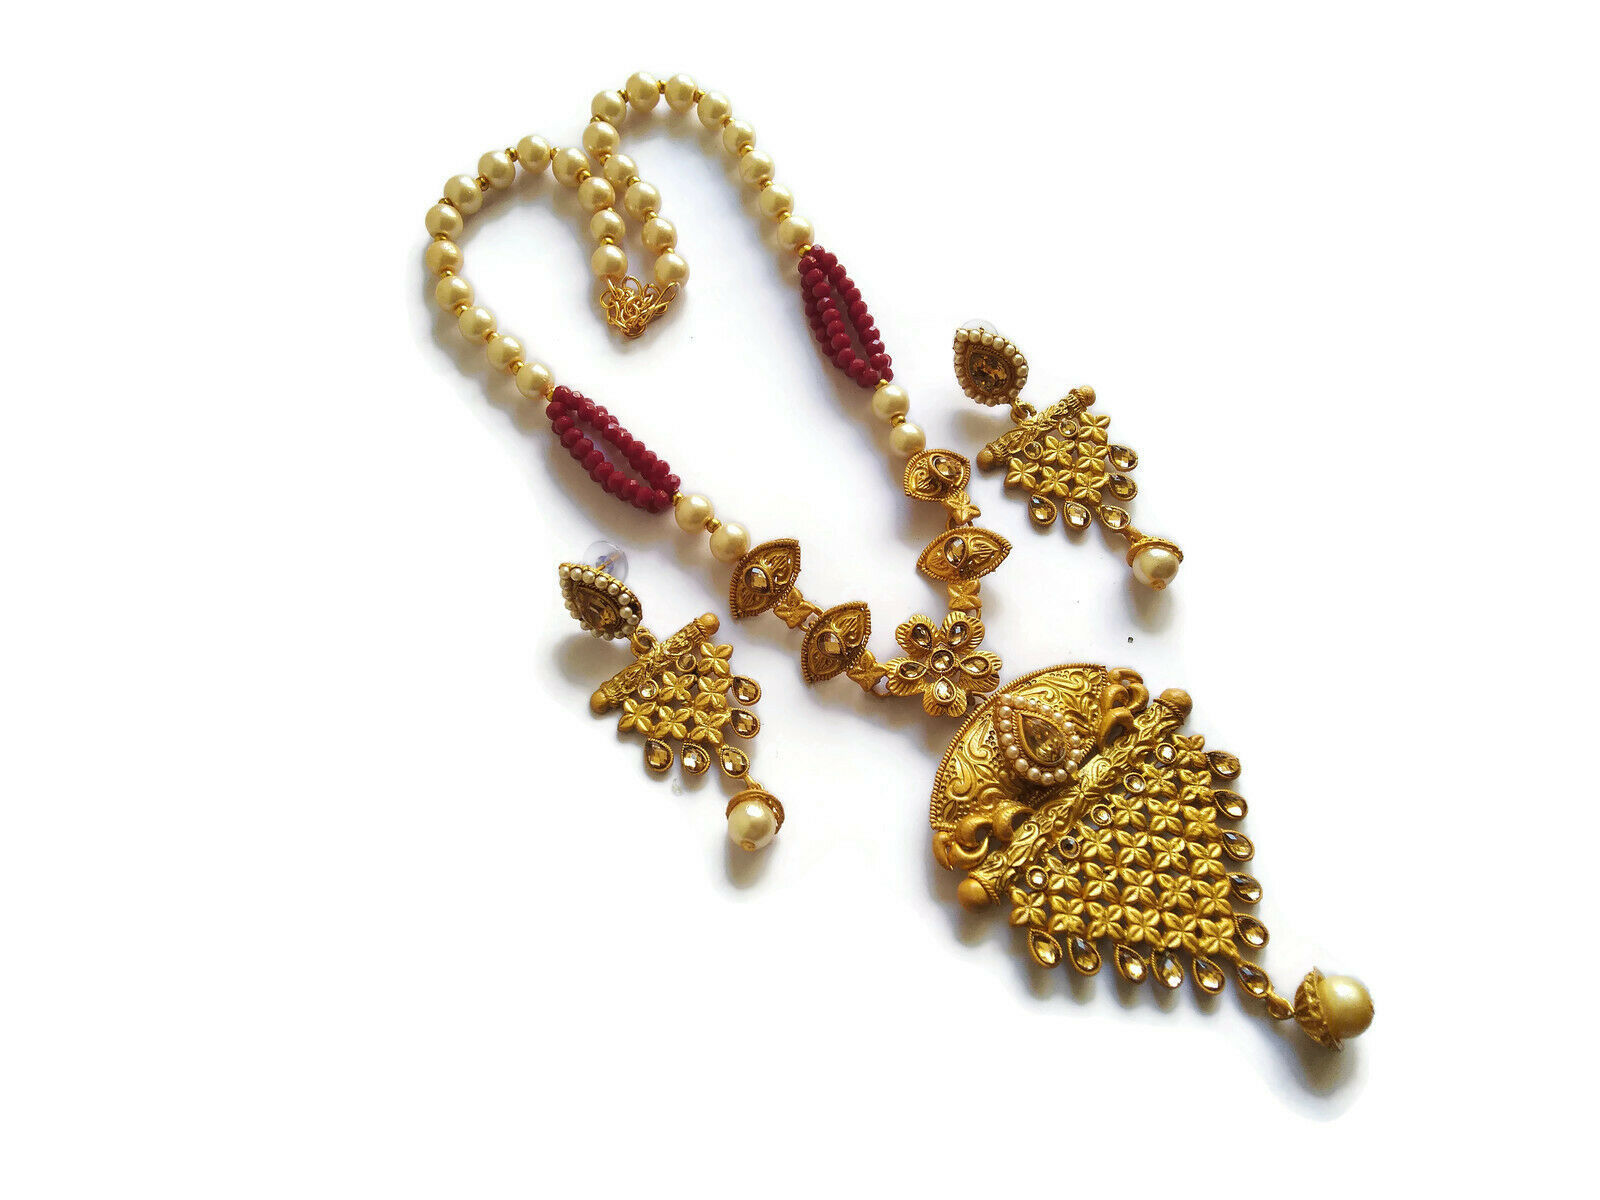 Indian Maroon Pearl Necklace Earrings Set Micro Gold Plated Fashion Jewelry